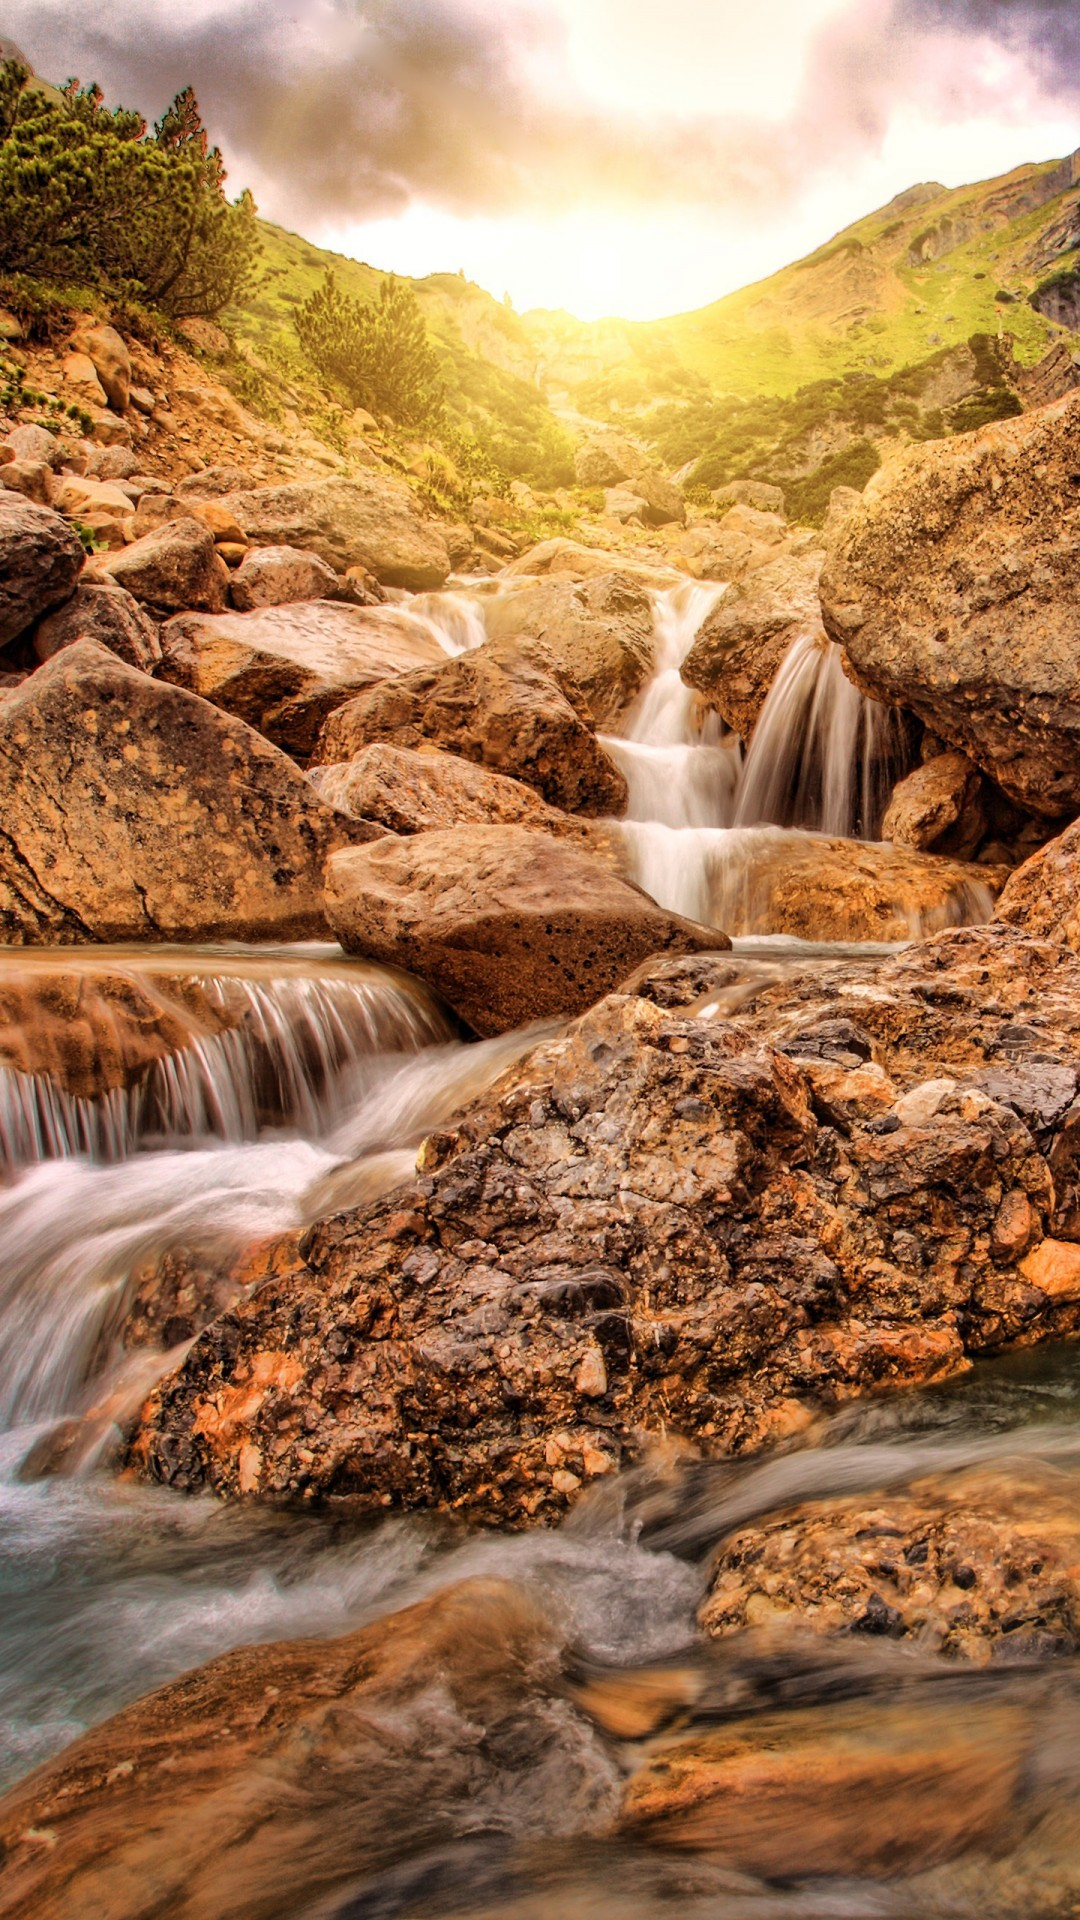 Free Glen Alpine Falls in California phone wallpaper by homeandbeds103